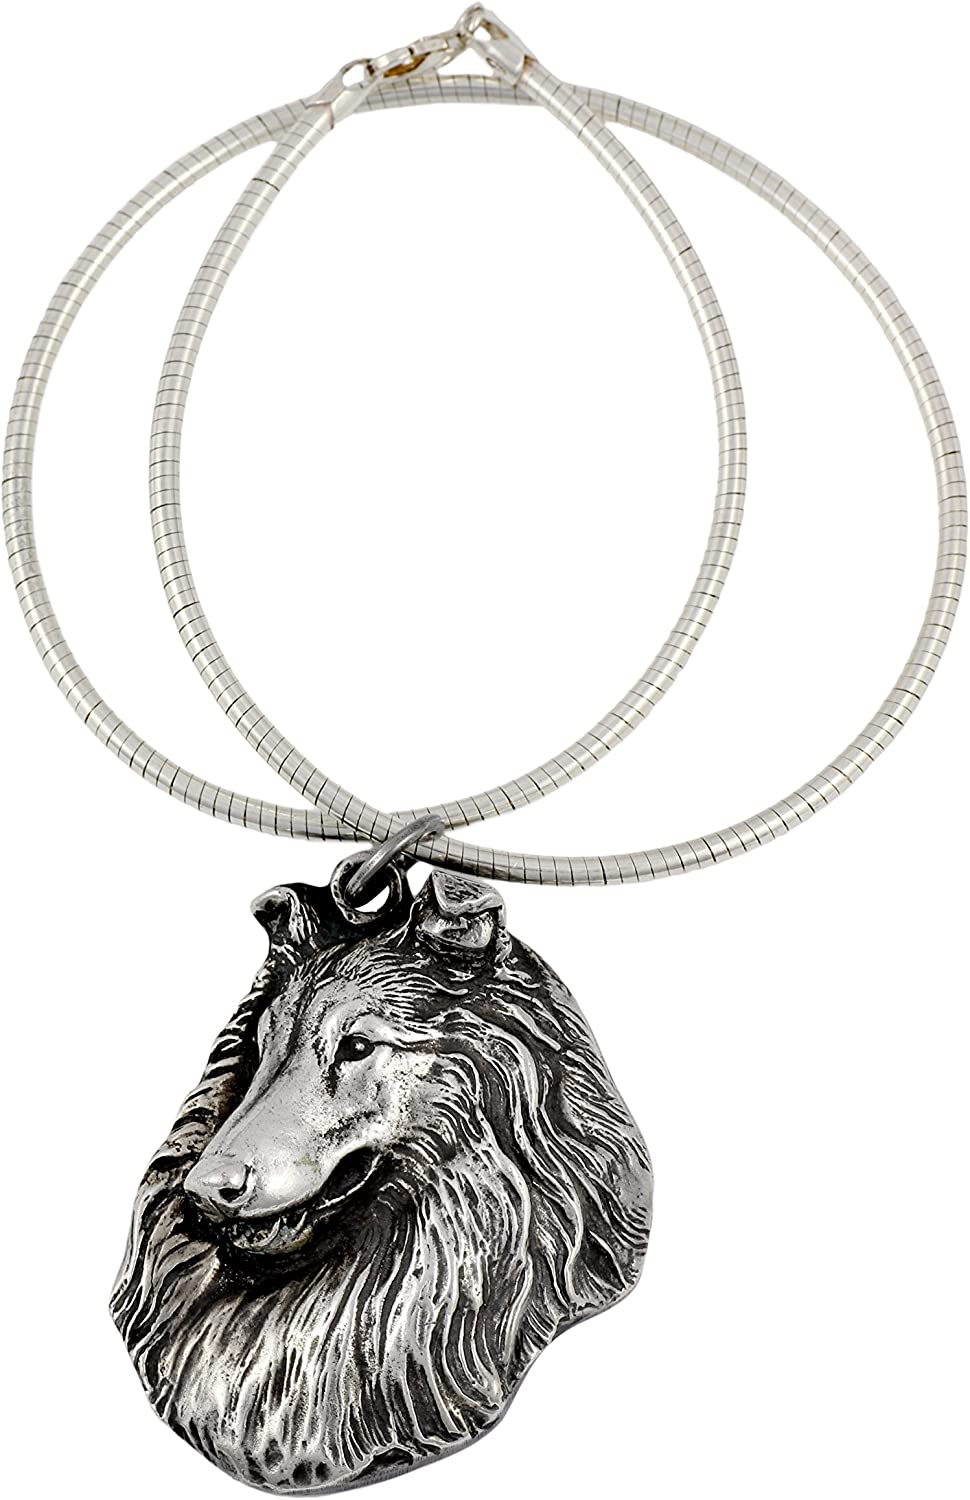 Necklace Silver Plated Dog Pendant on a Silver Chain Afghan Hound ArtDog